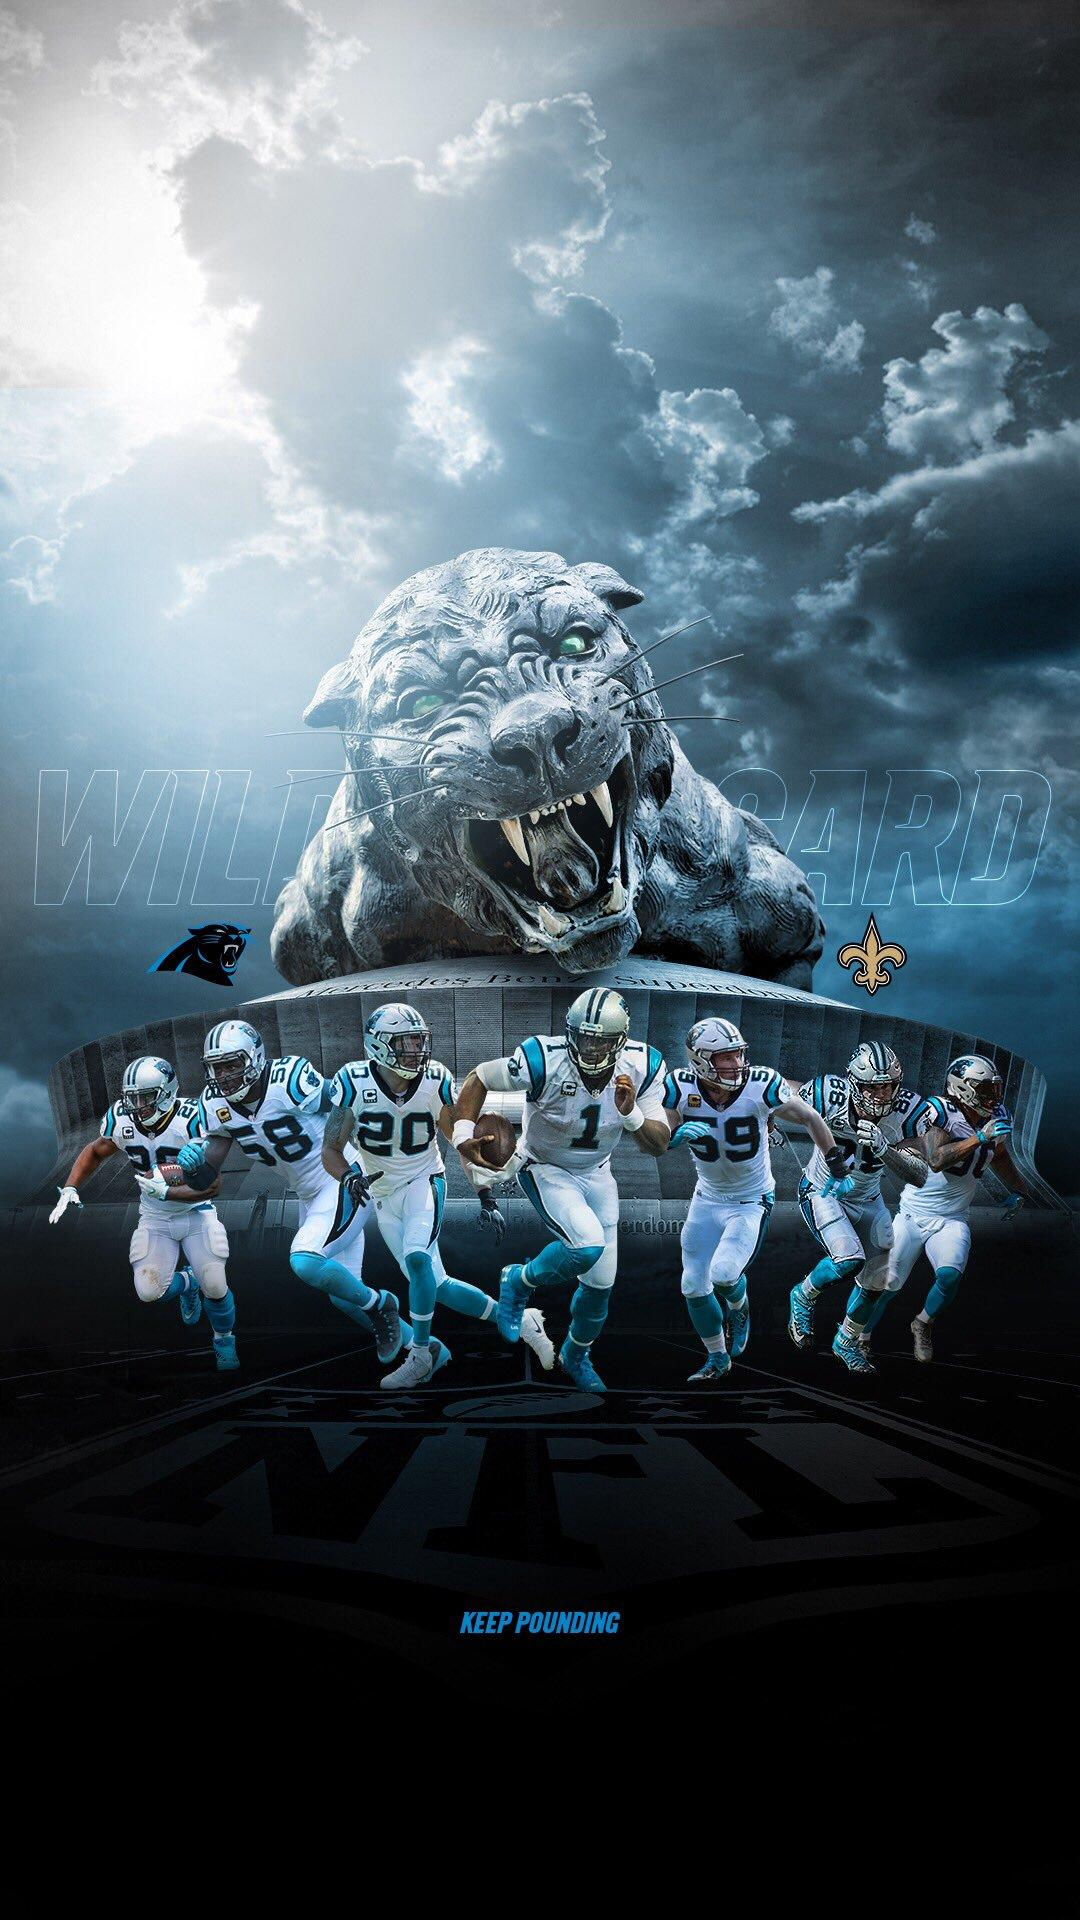 Carolina Panthers on Twitter: Gameday wallpapers ⬇ …